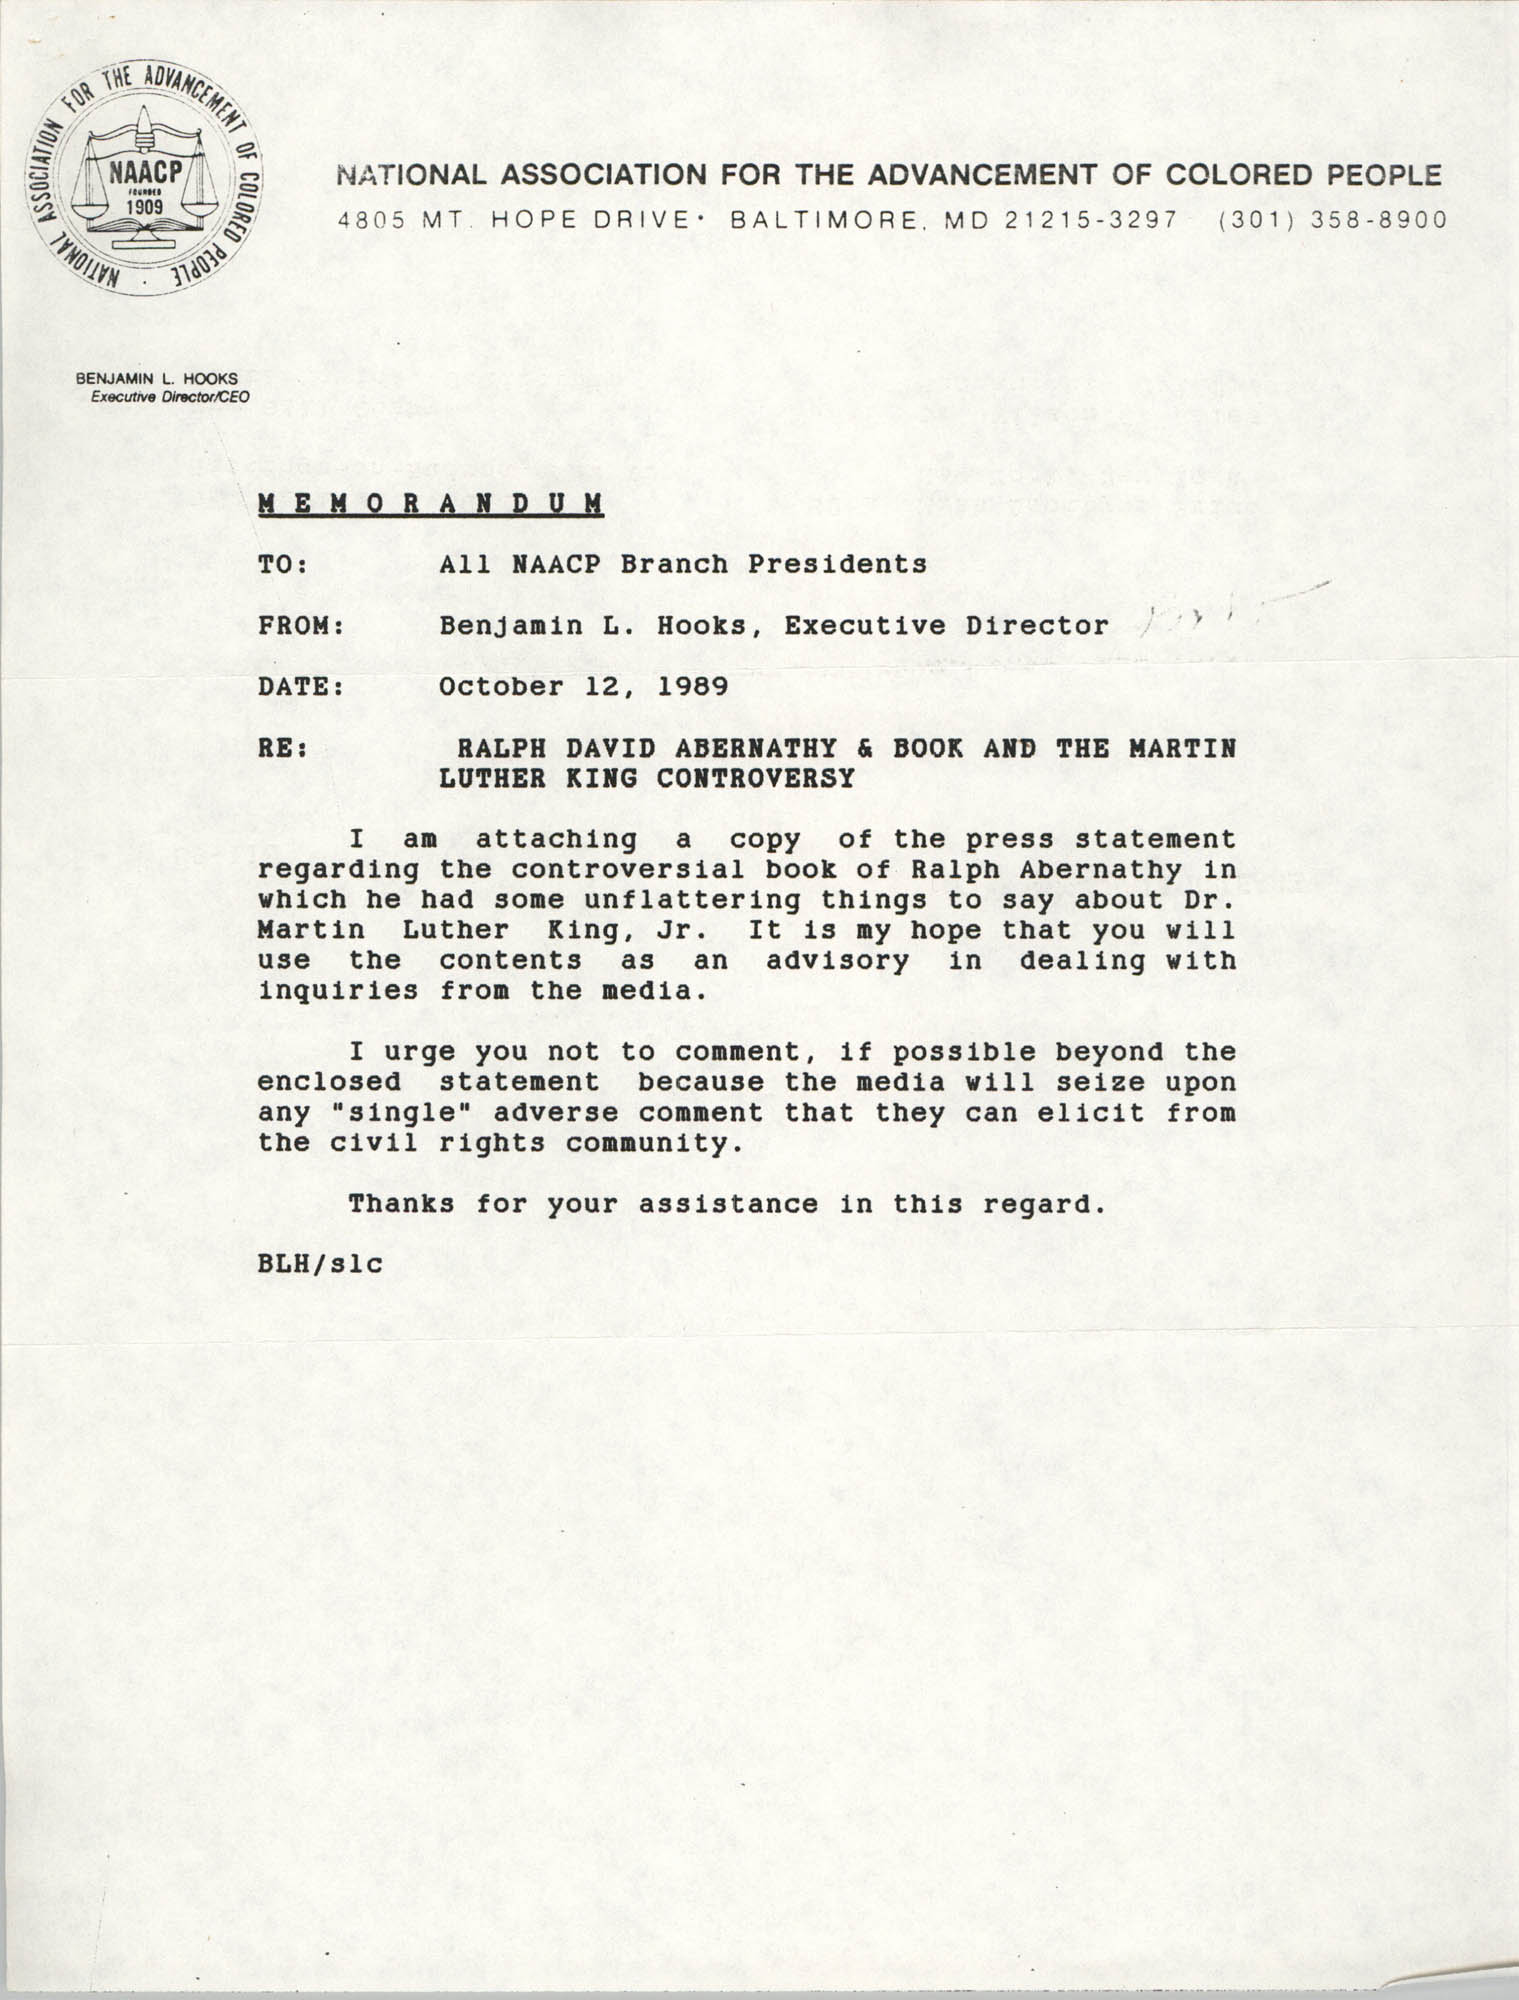 NAACP Memorandum, October 12, 1989